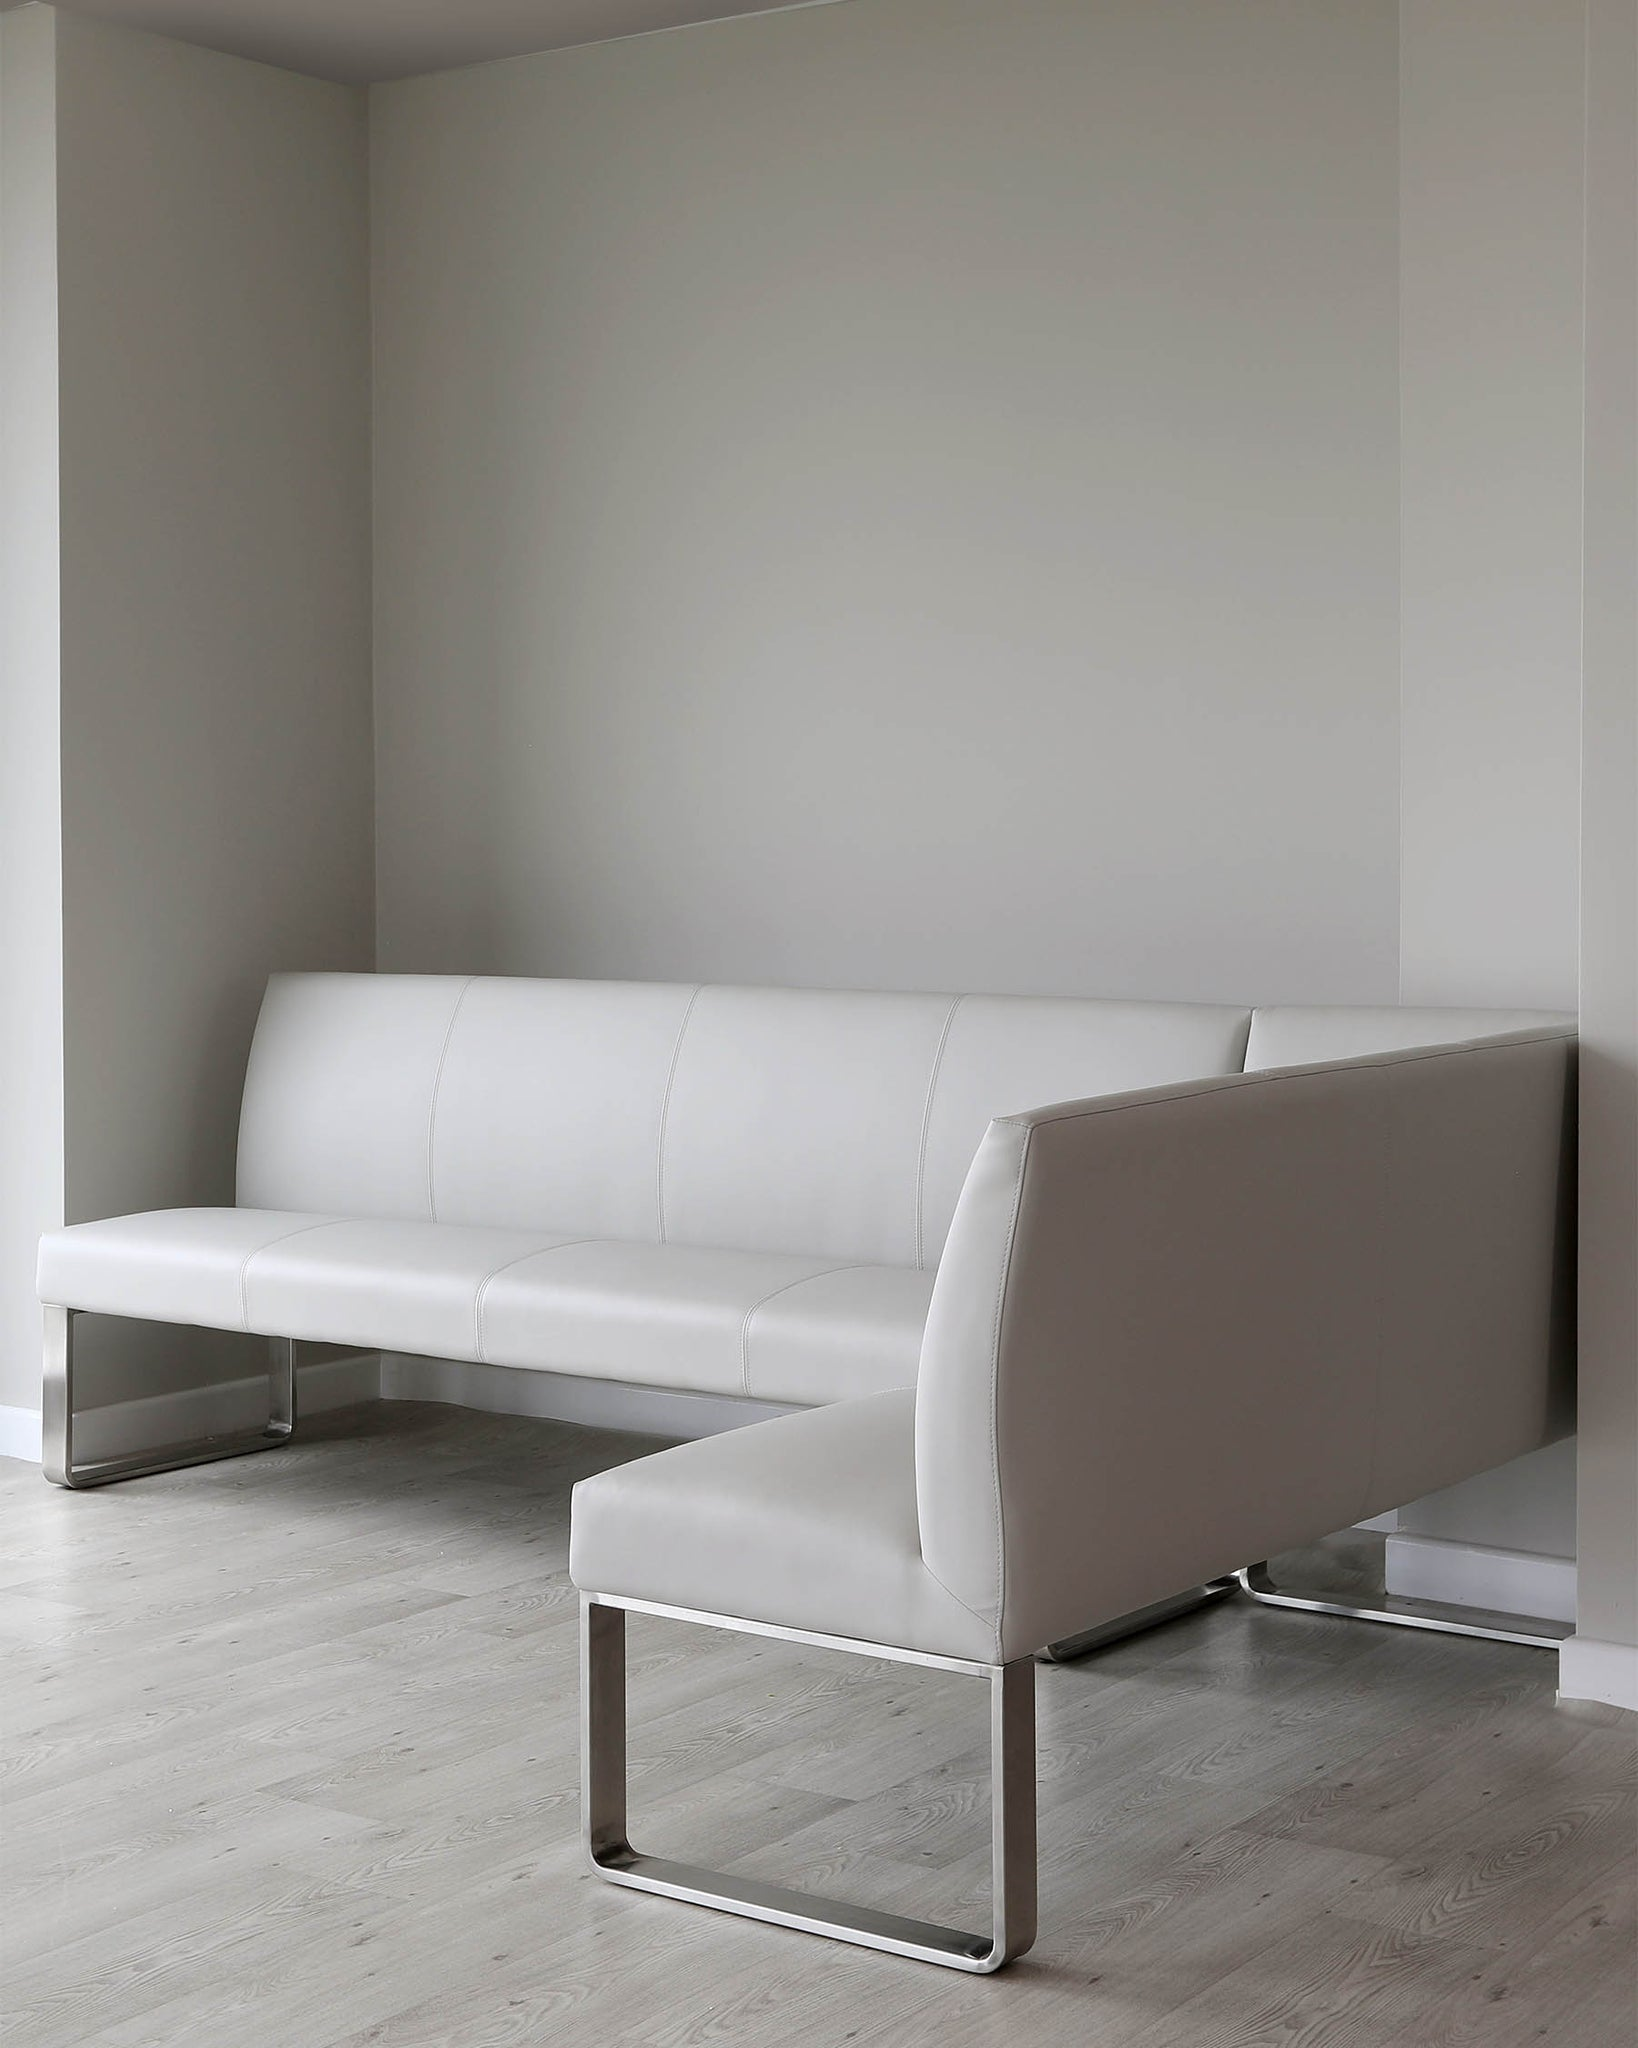 Loop 7 Seater Light Grey Faux Leather & Stainless Steel Left Hand Corner Bench